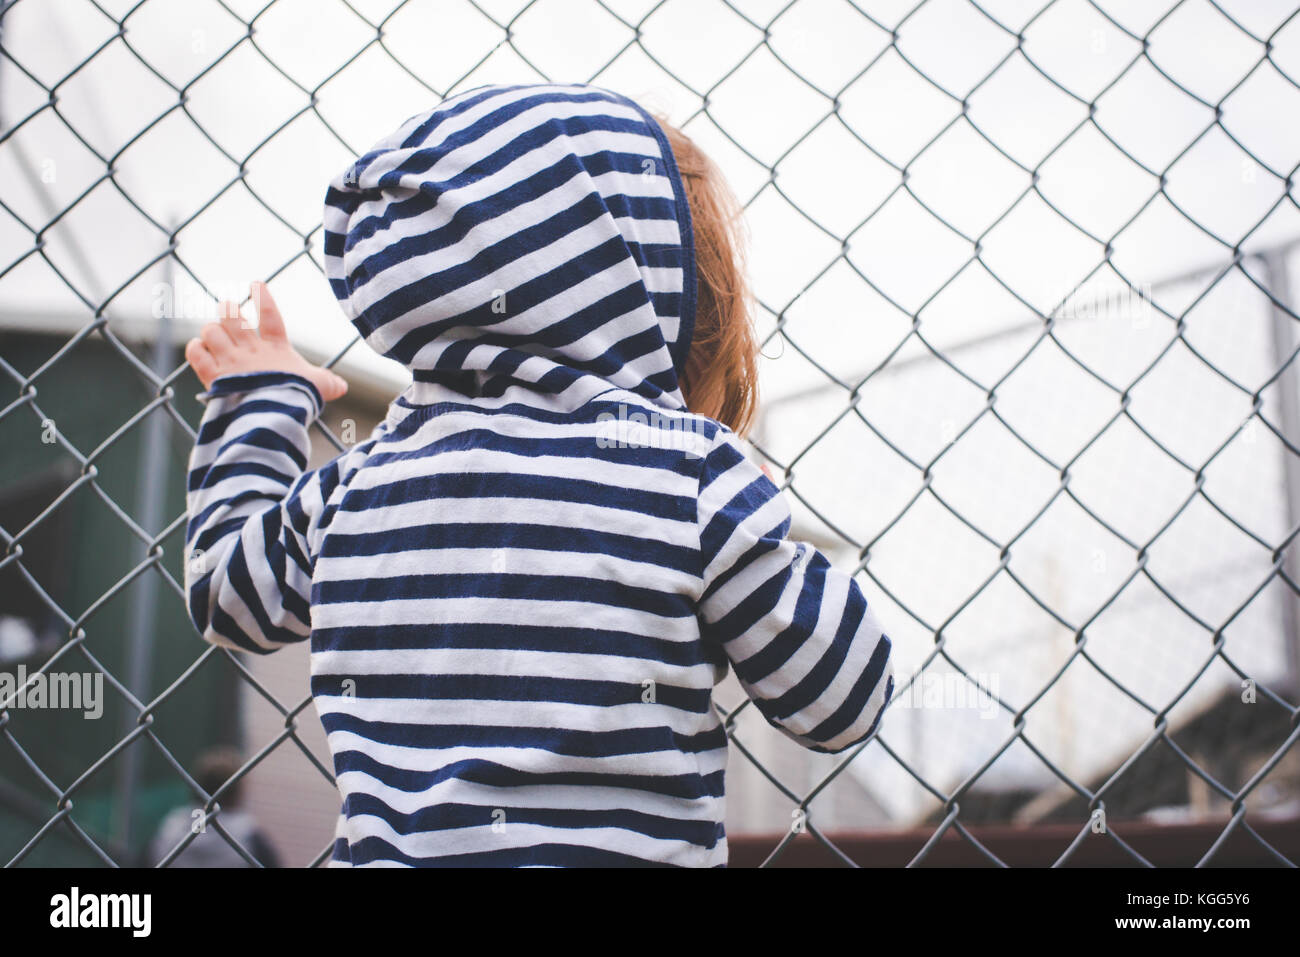 Child hangs on a fence and looks through it. - Stock Image